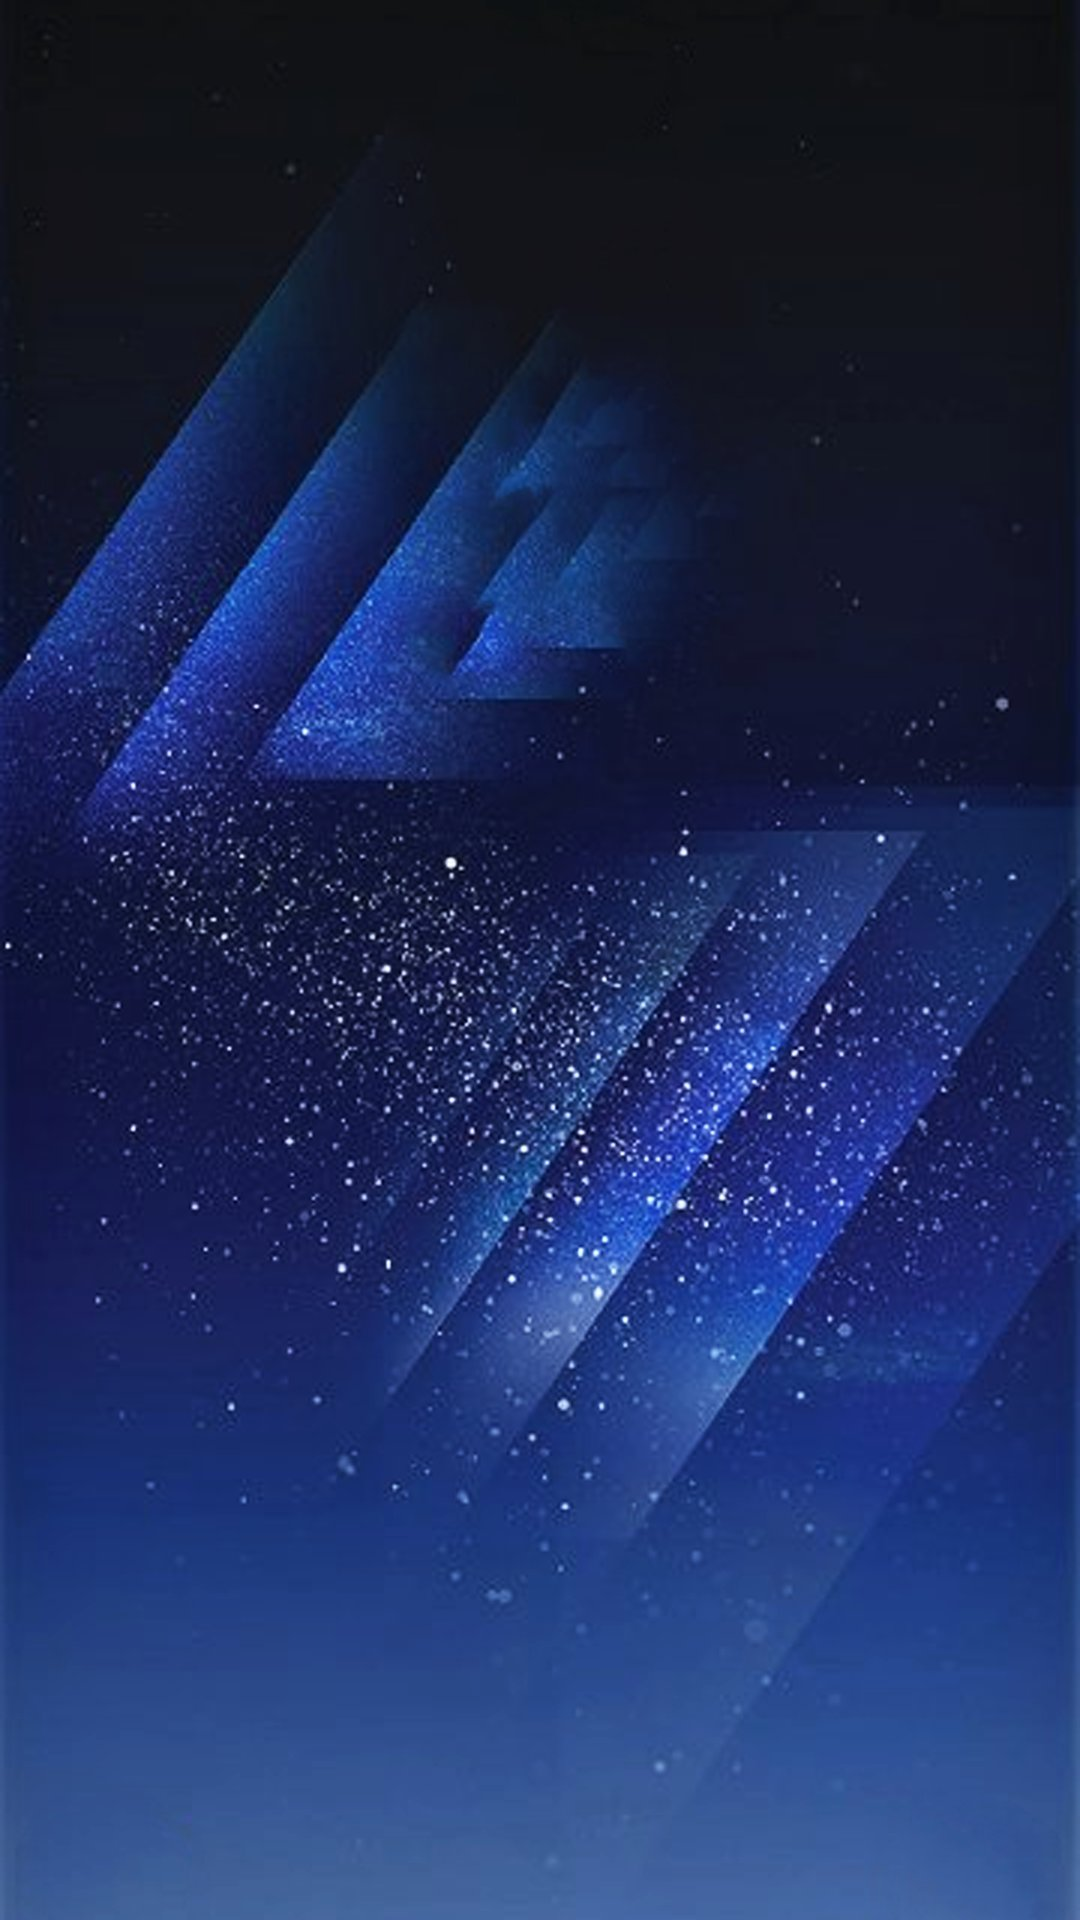 customize your phone with wallpapers from the samsung galaxy s8